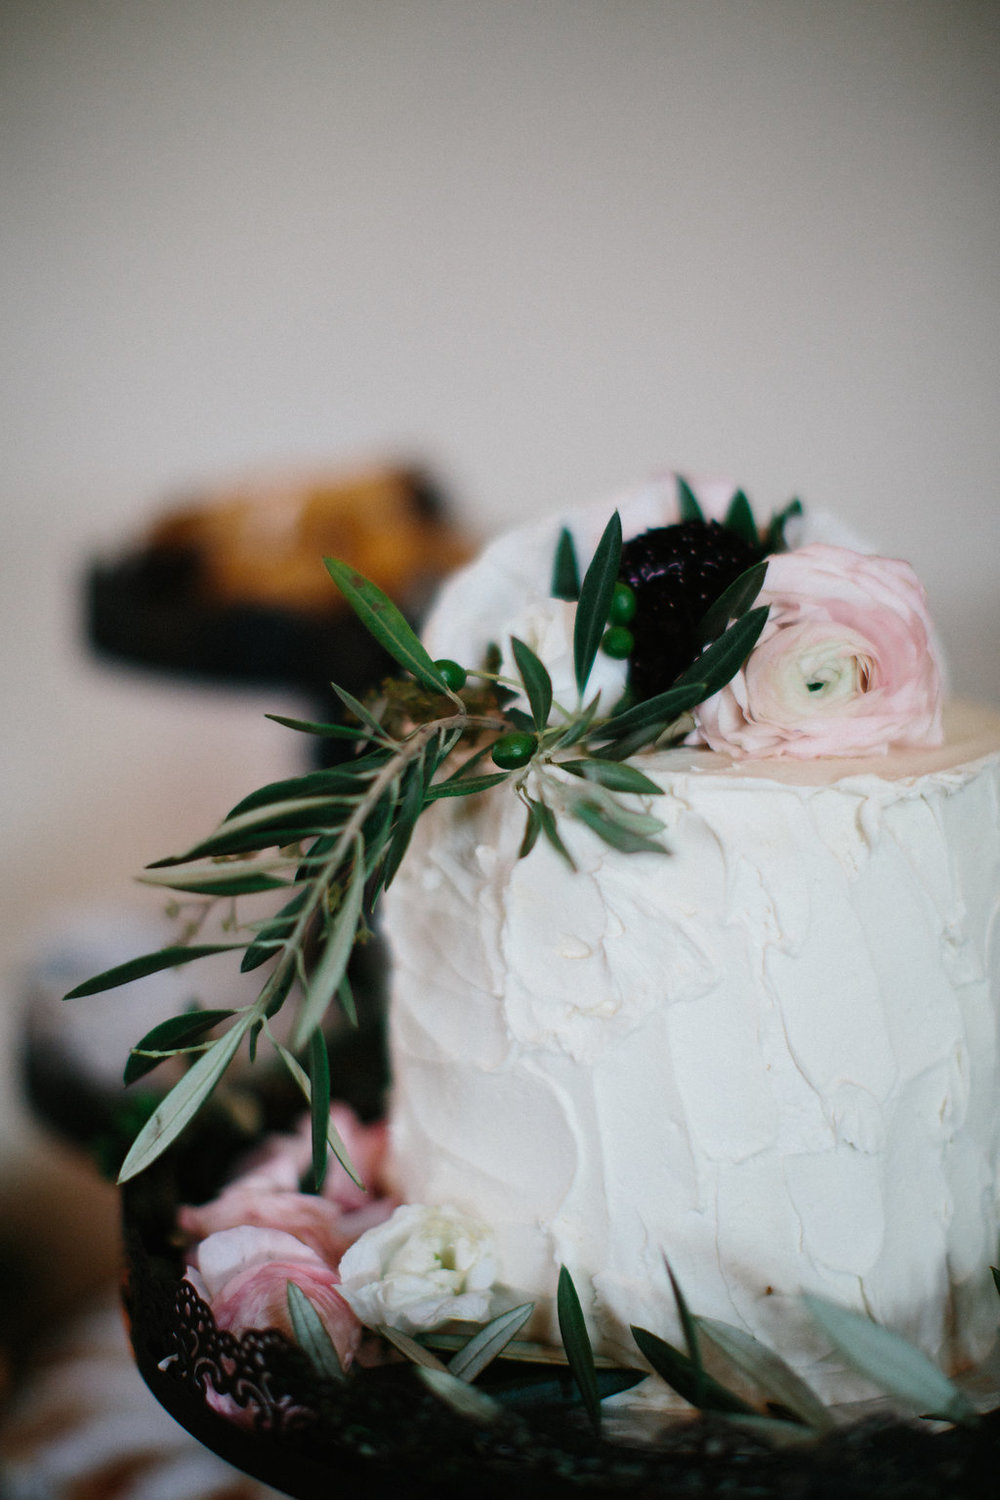 Nicole and Luke Sixpence Events wedding planning clients | Amy's Cupcake Shoppe Cake | rosemary and ranunculus on the cake | Kristina Lorraine Photography | Villa Bellezza wedding | wedding podcast